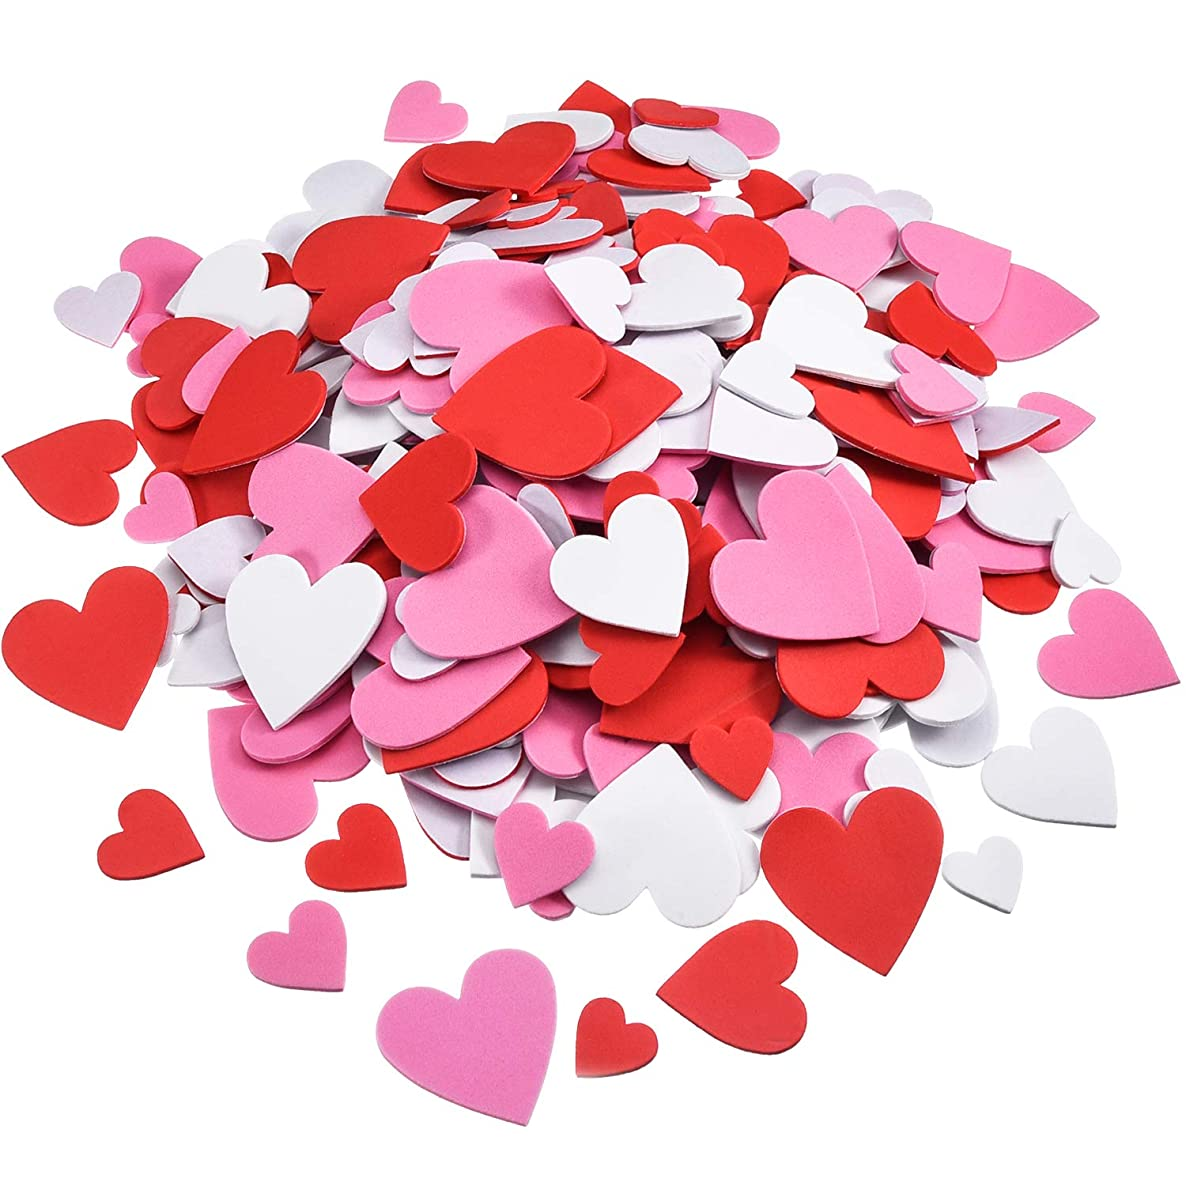 WILLBOND Foam Heart Stickers Foam Hearts Self Adhesive Stickers Hearts for Valentine's Day Mother's Day DIY Crafts, Assorted Size, 3 Colors (300) lxvvdwvrdqysw2